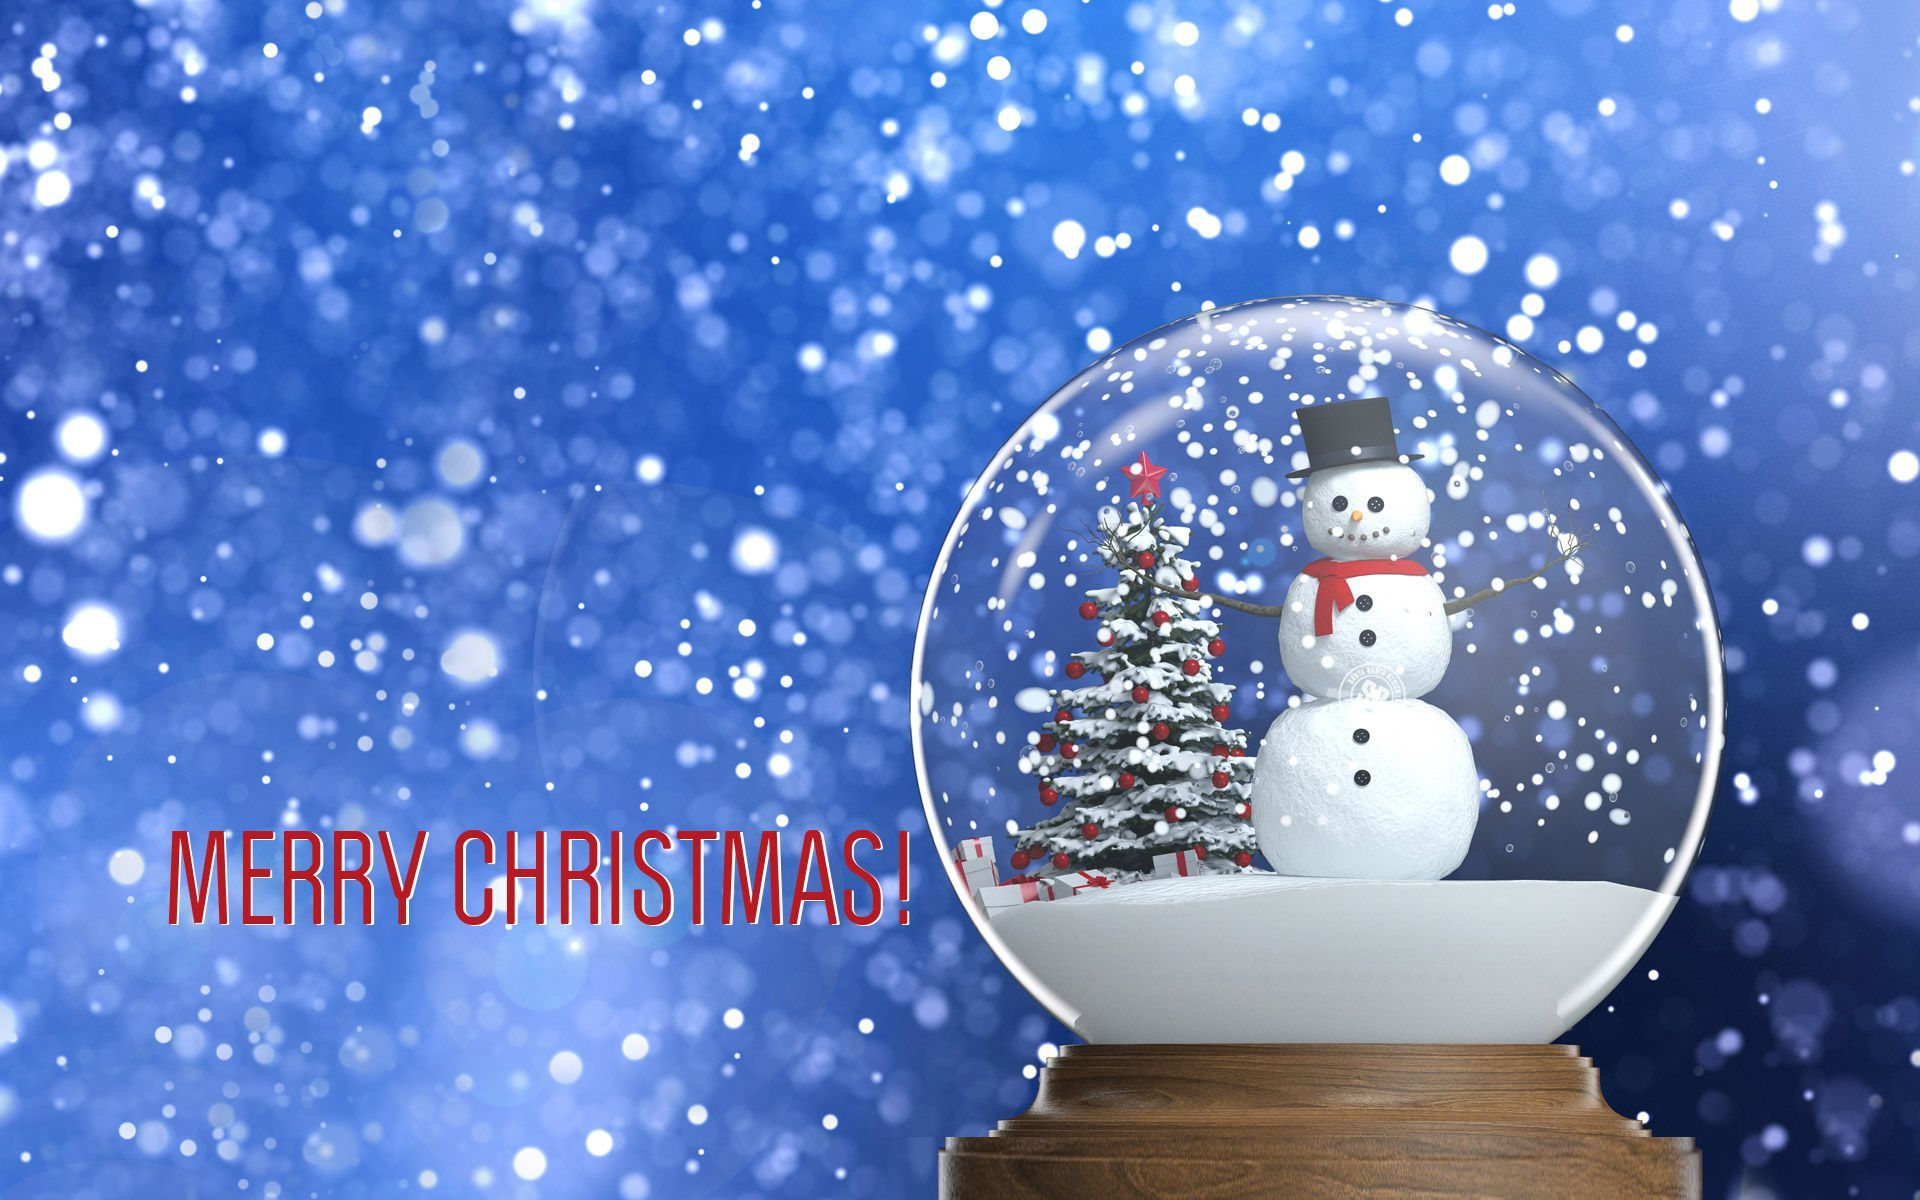 Pin By Morehdwallpapers On Merry Christmas Wallpaper Merry Christmas Wishes Images Merry Christmas Images Merry Christmas Wishes